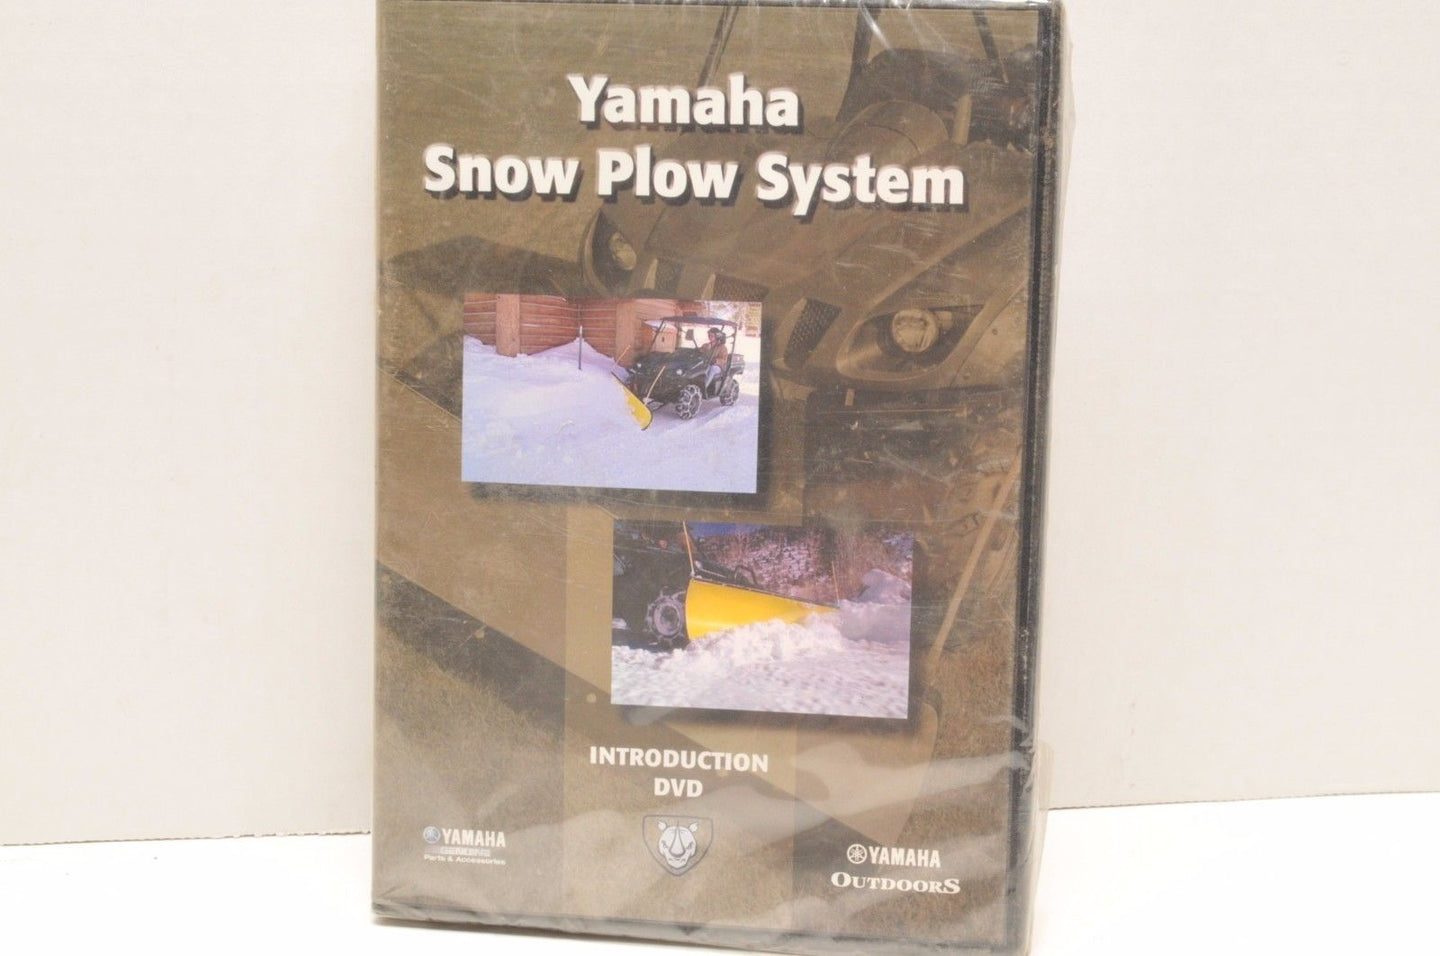 Genuine YAMAHA OUTDOORS SERVICE SNOW PLOW SYSTEMS INTRODUCTION DVD ATV SXS